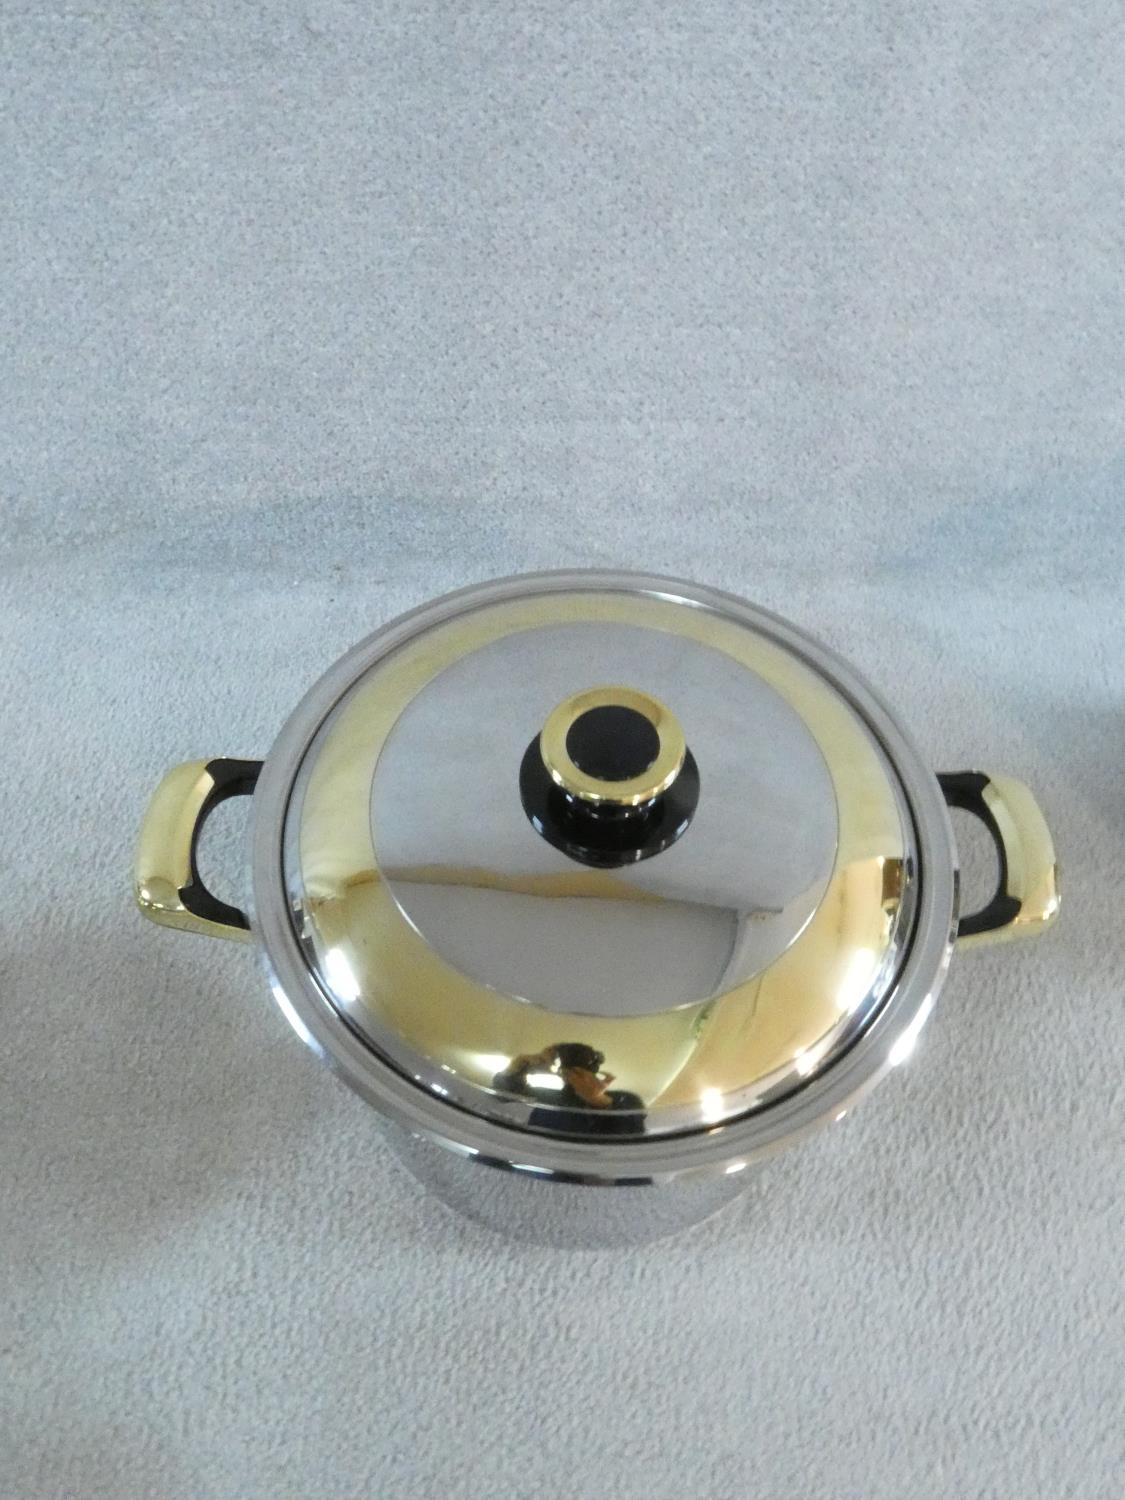 A set of boxed stainless steel as new Cameo Royale pans and cookware with 24k gold plated - Image 4 of 22